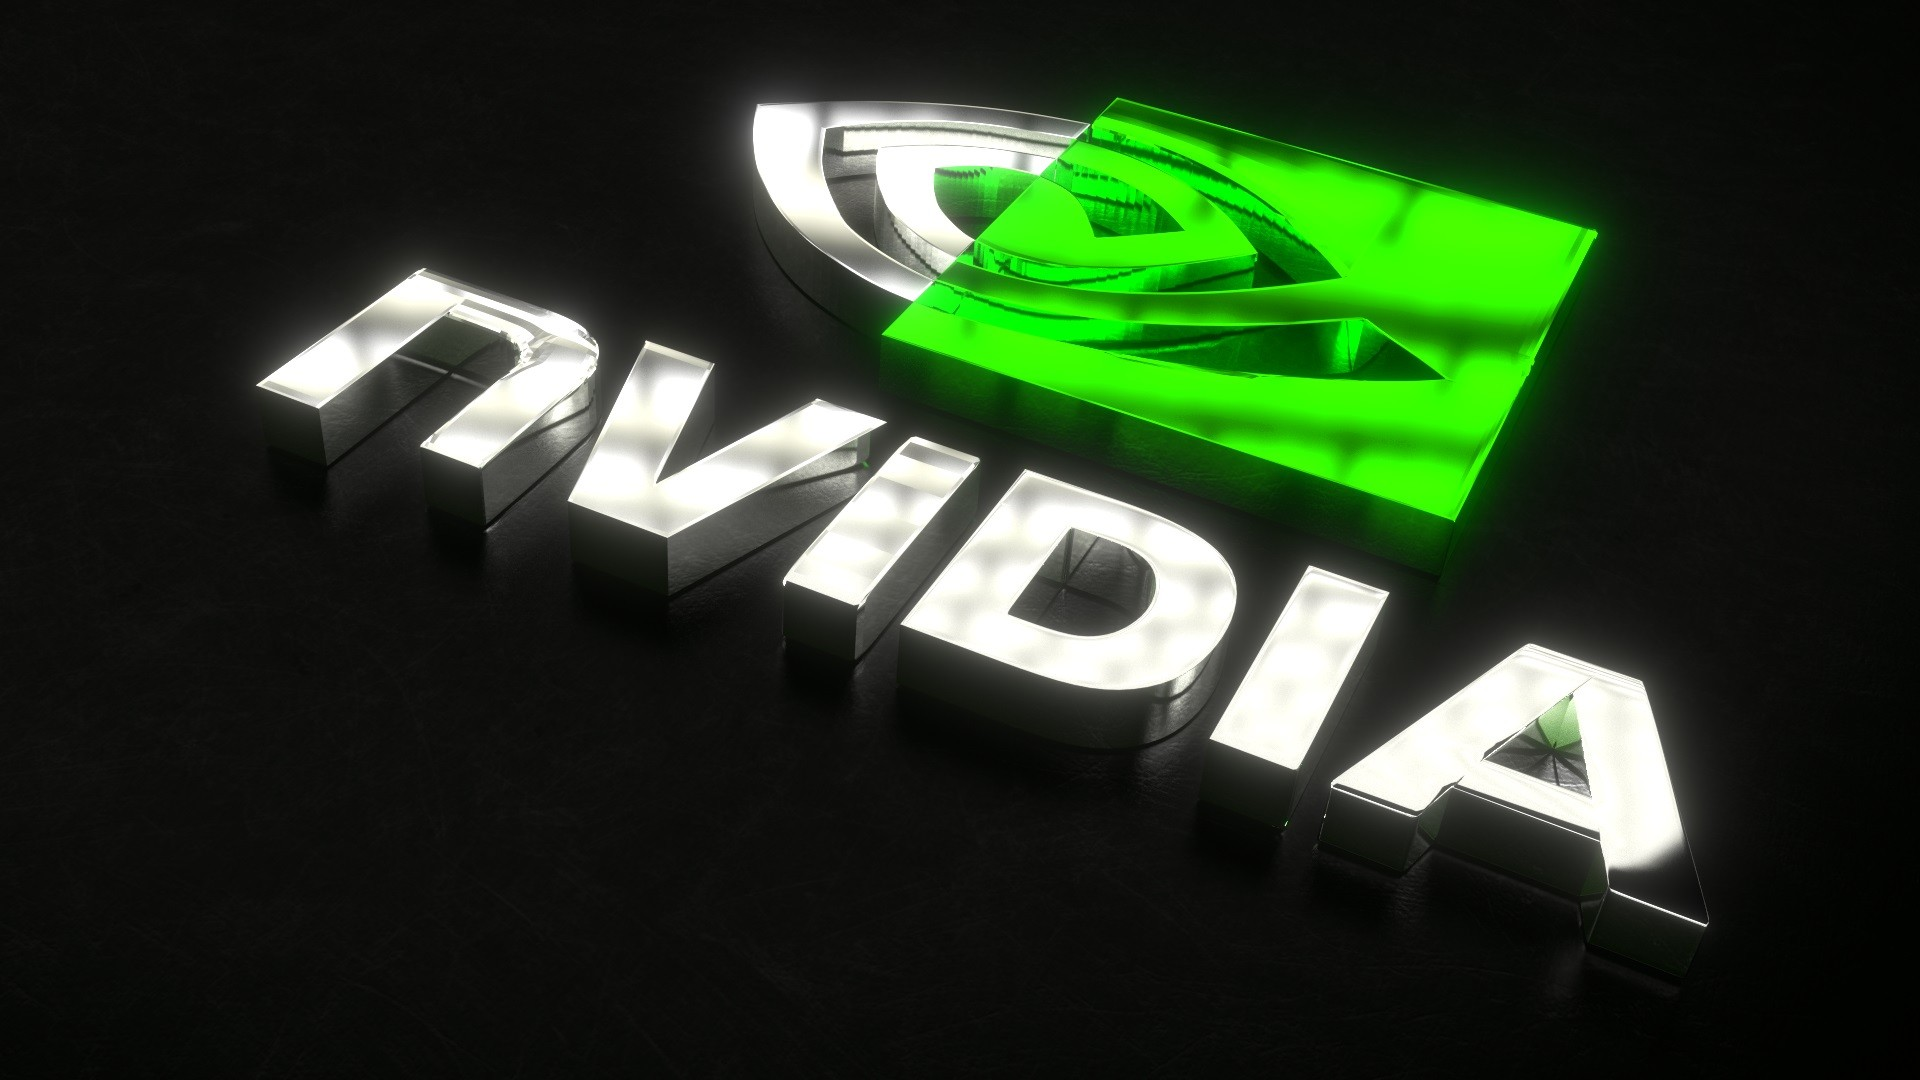 Valuation in Focus: NVIDIA Corporation (NASDAQ:NVDA)